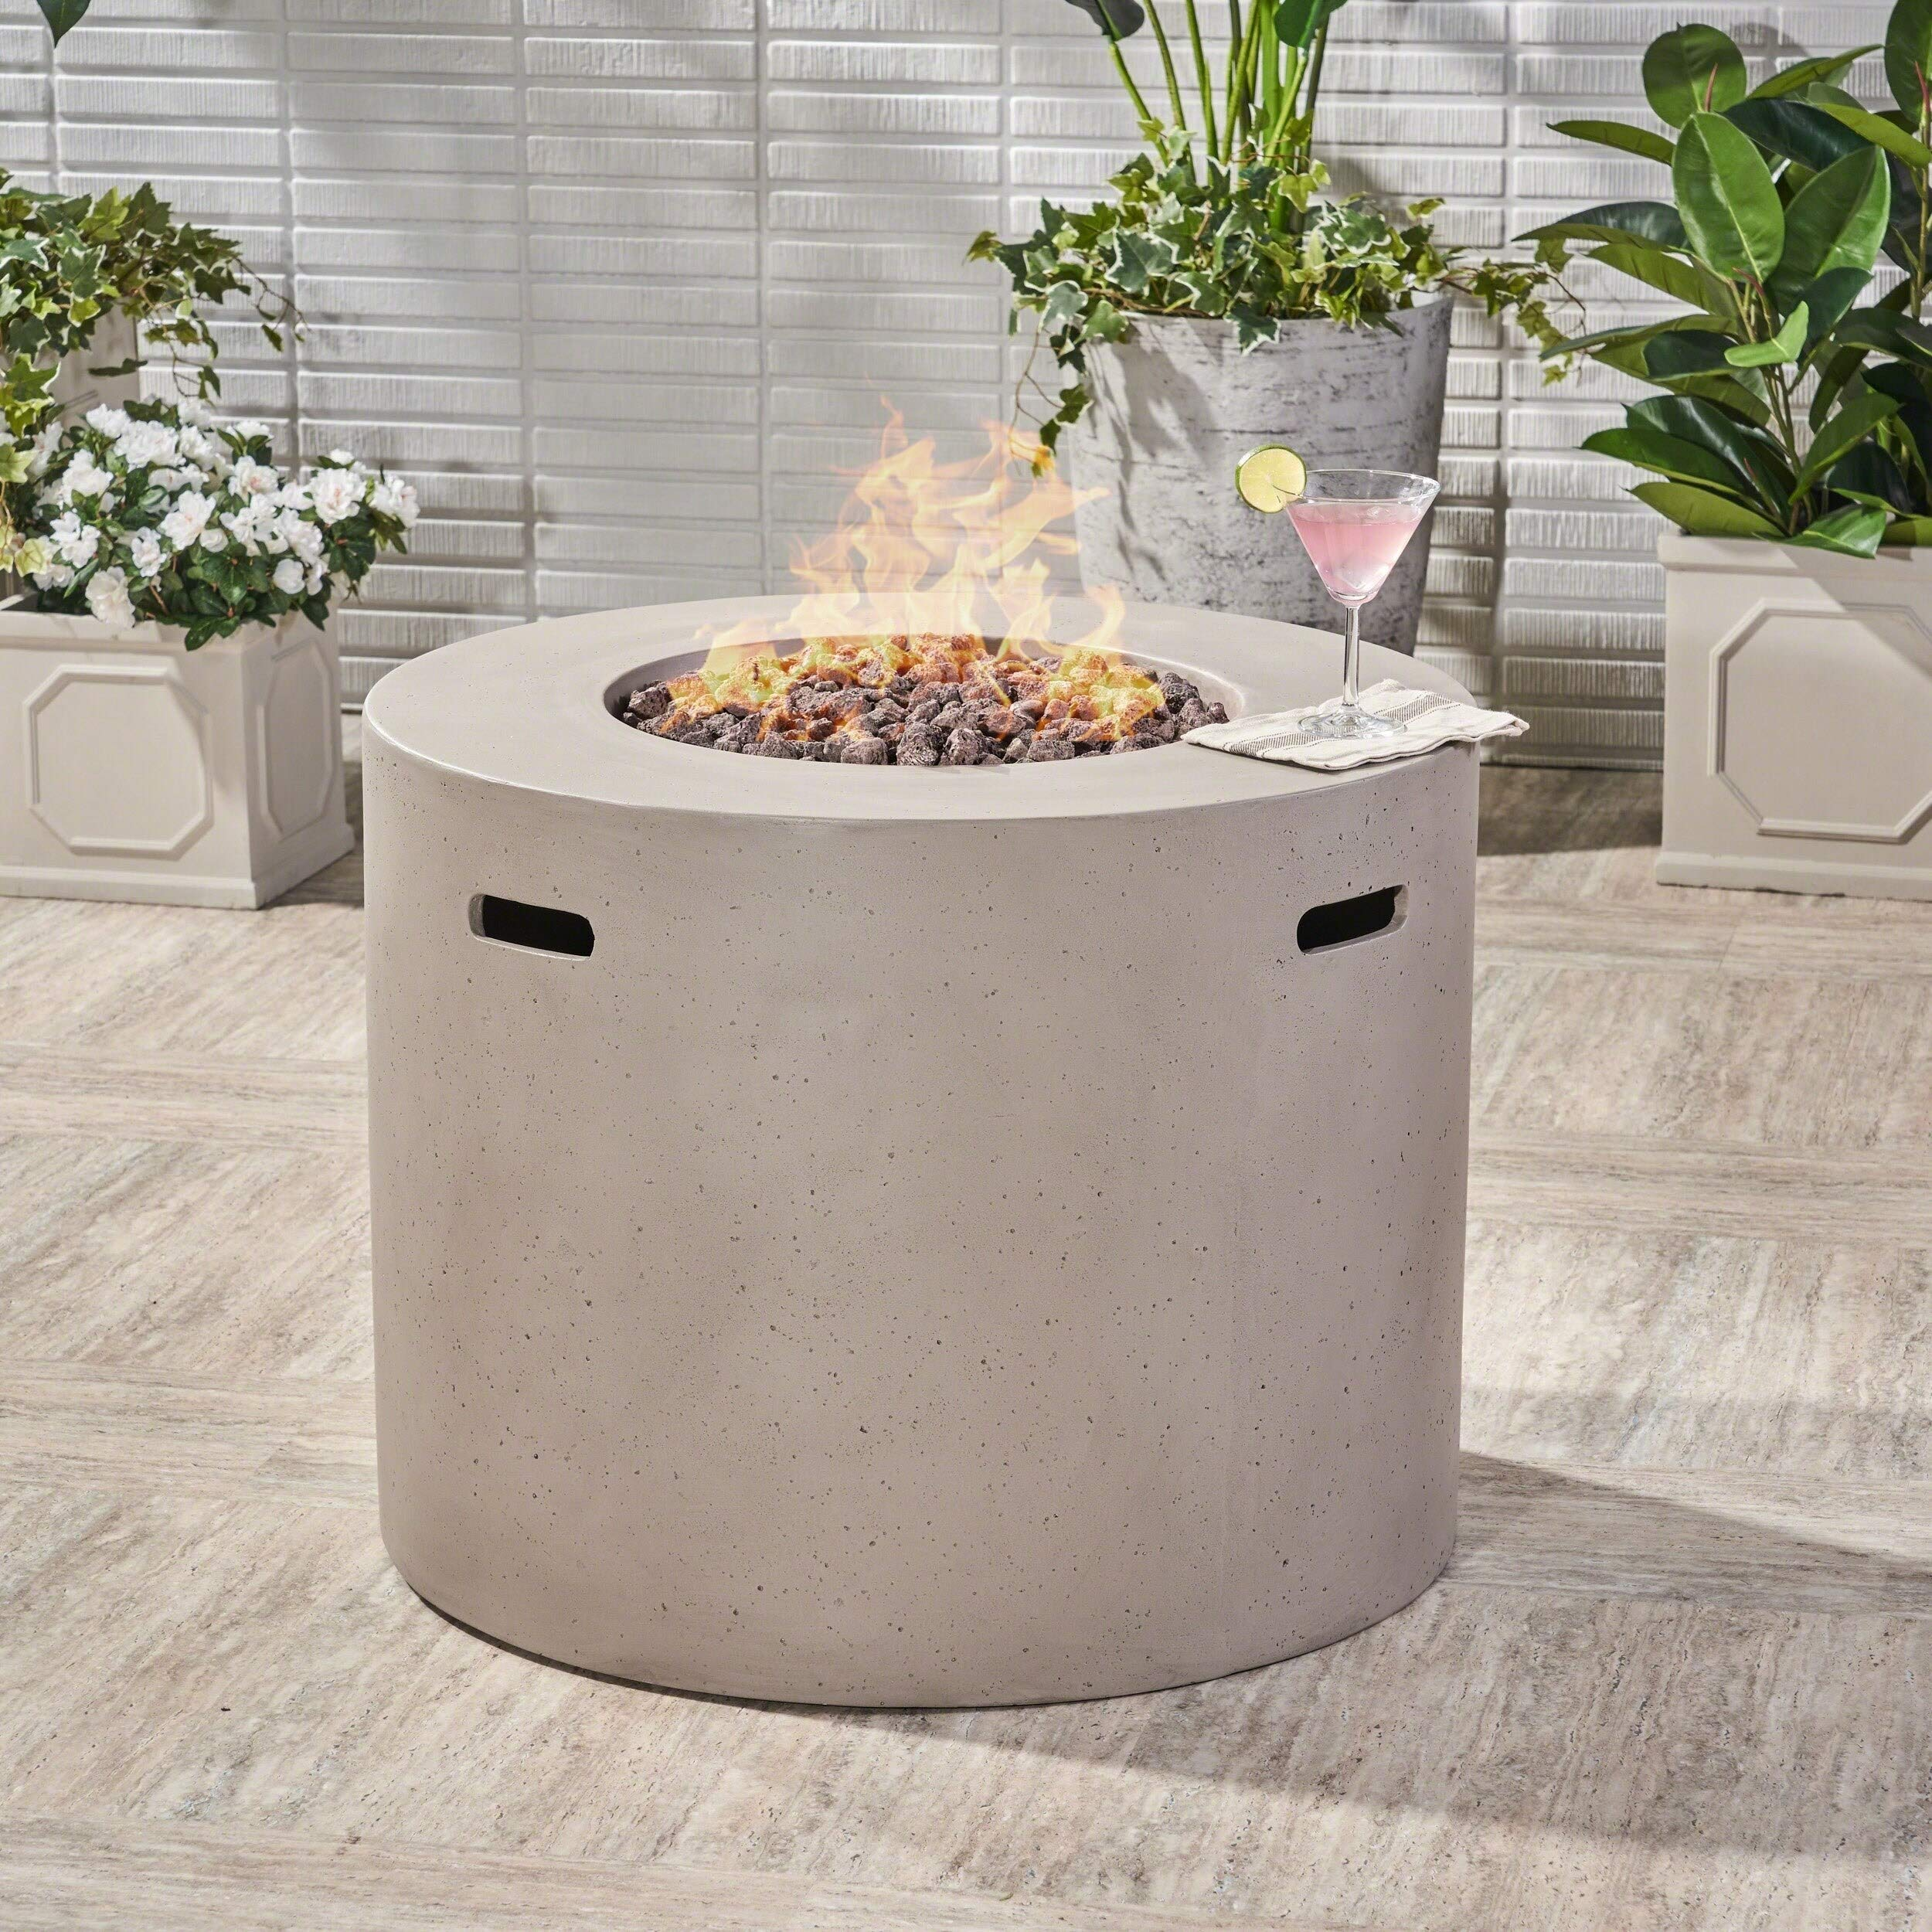 Christopher Knight Home Aidan Outdoor 31-inch Circular Propane Fire Pit Table w/Tank Holder by - N/A Light Grey by Christopher Knight Home